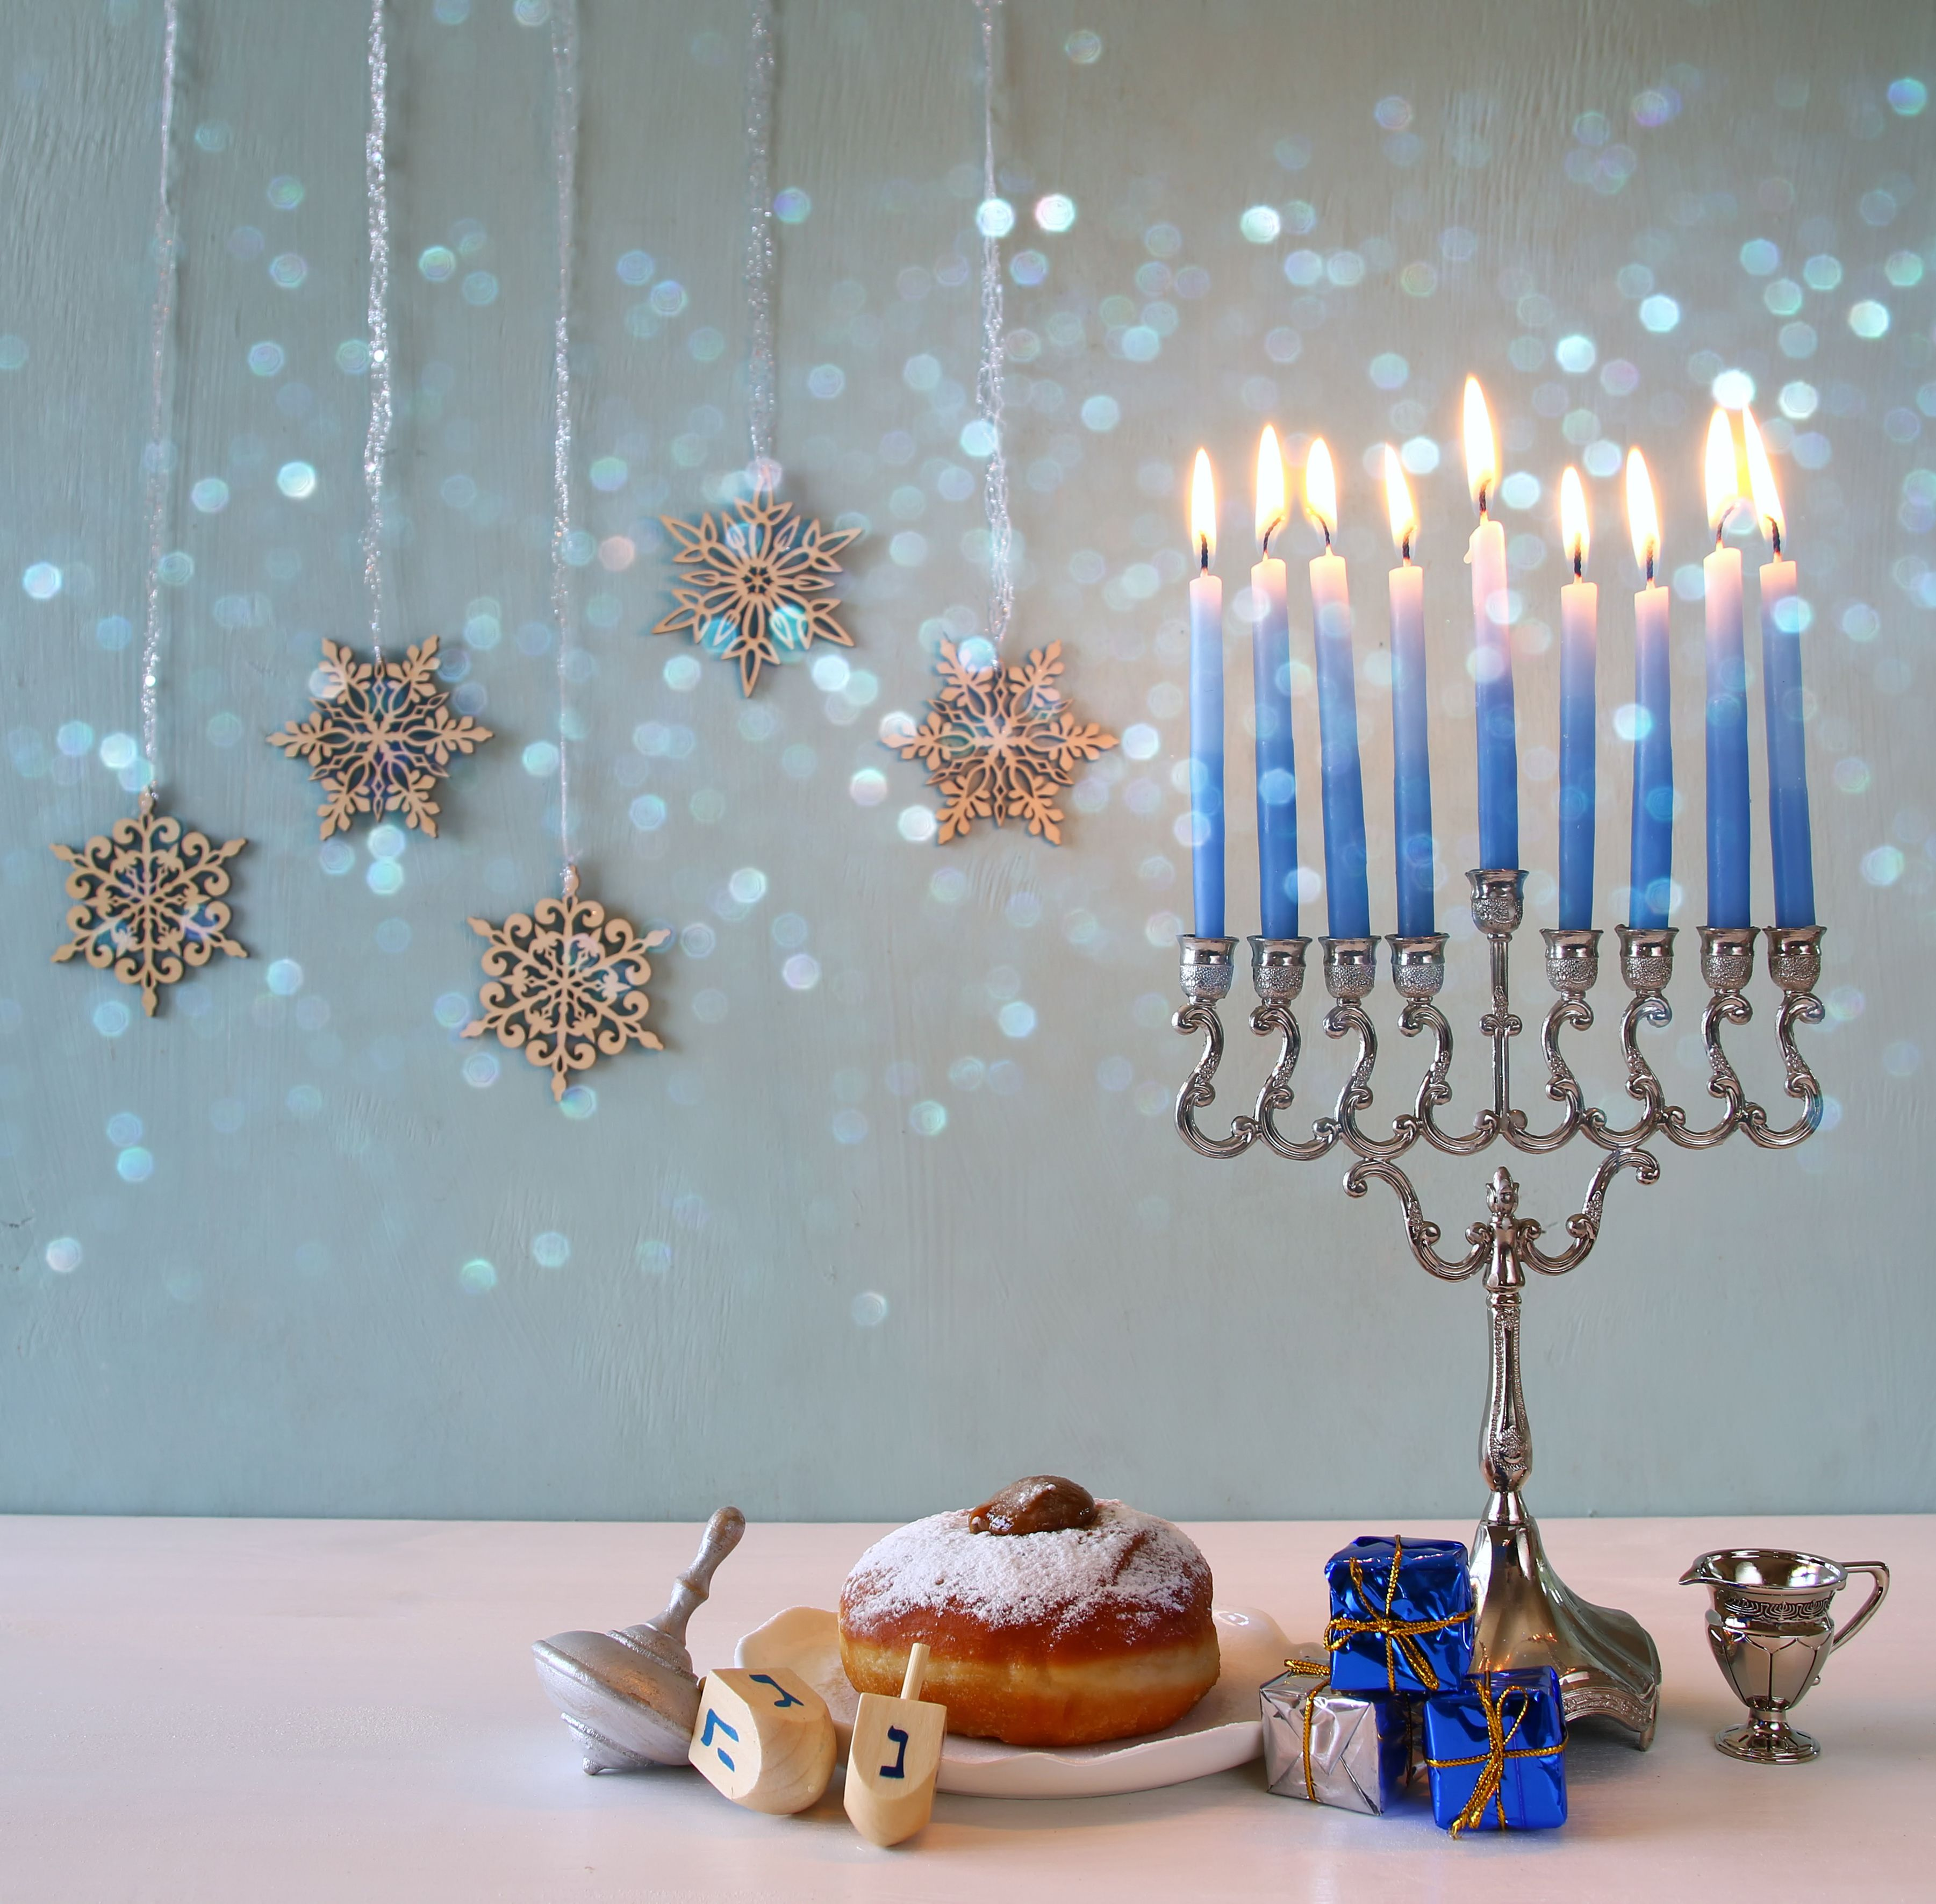 image-of-jewish-holiday-hanukkah